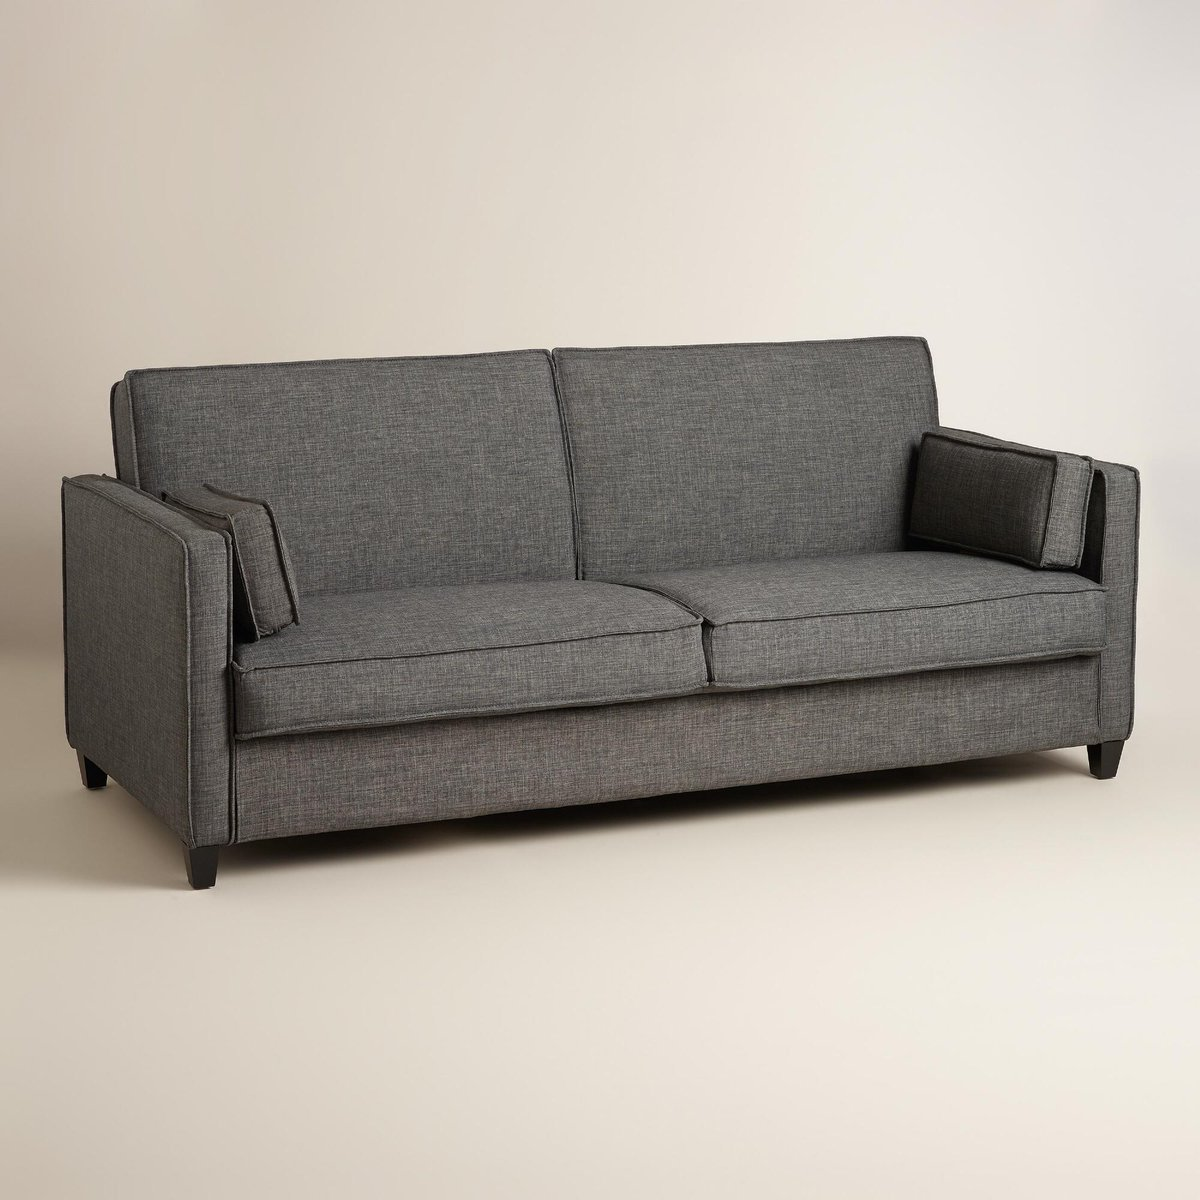 Peachy World Market On Twitter Nolee Folding Sofa Bed Sale Ncnpc Chair Design For Home Ncnpcorg